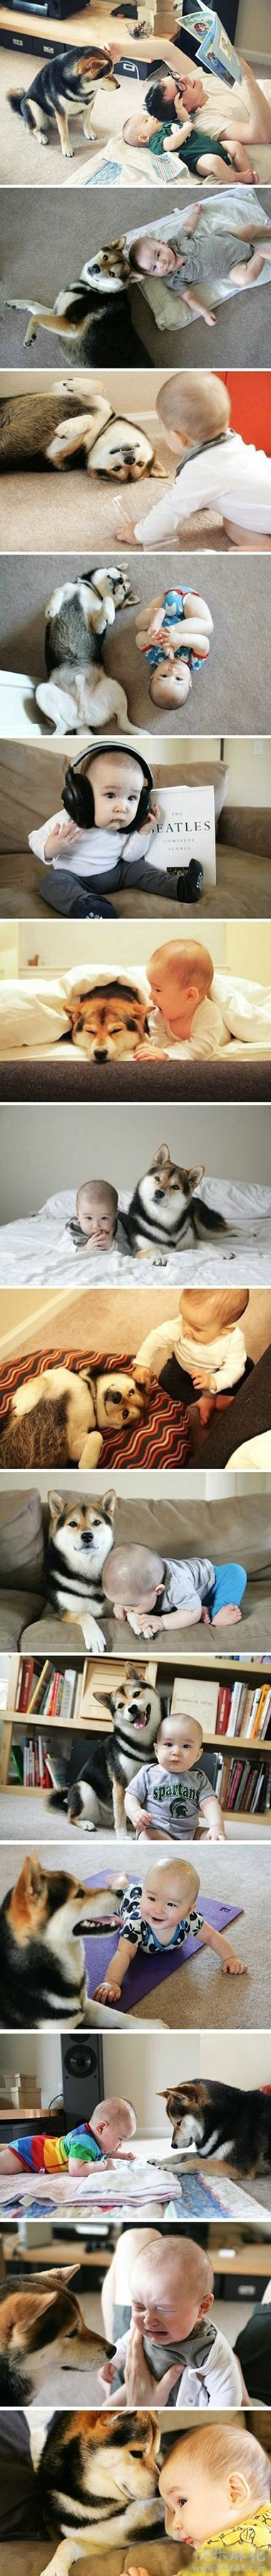 A True Friend Kawaii Pinterest Cute animals Dogs and Animals